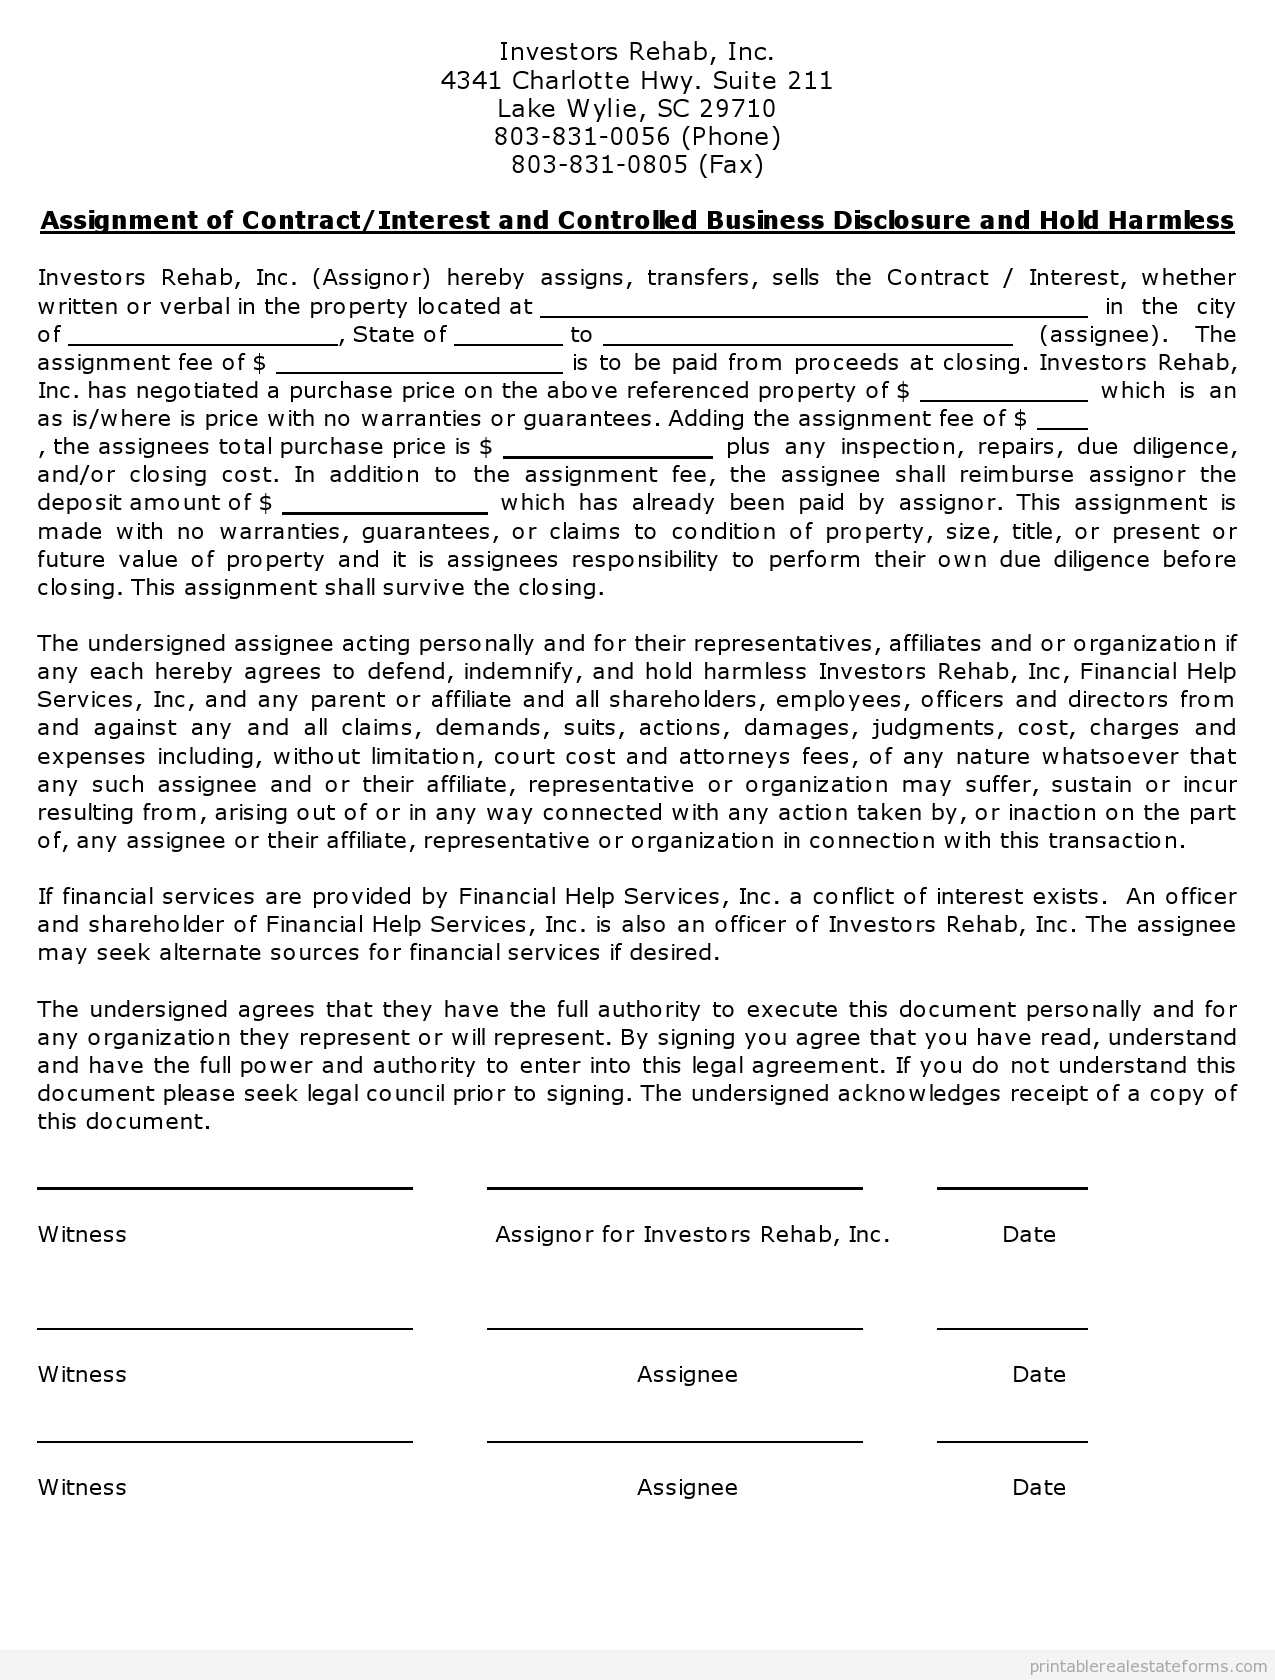 Free Printable Assignment Of Contractinterest And Controlled